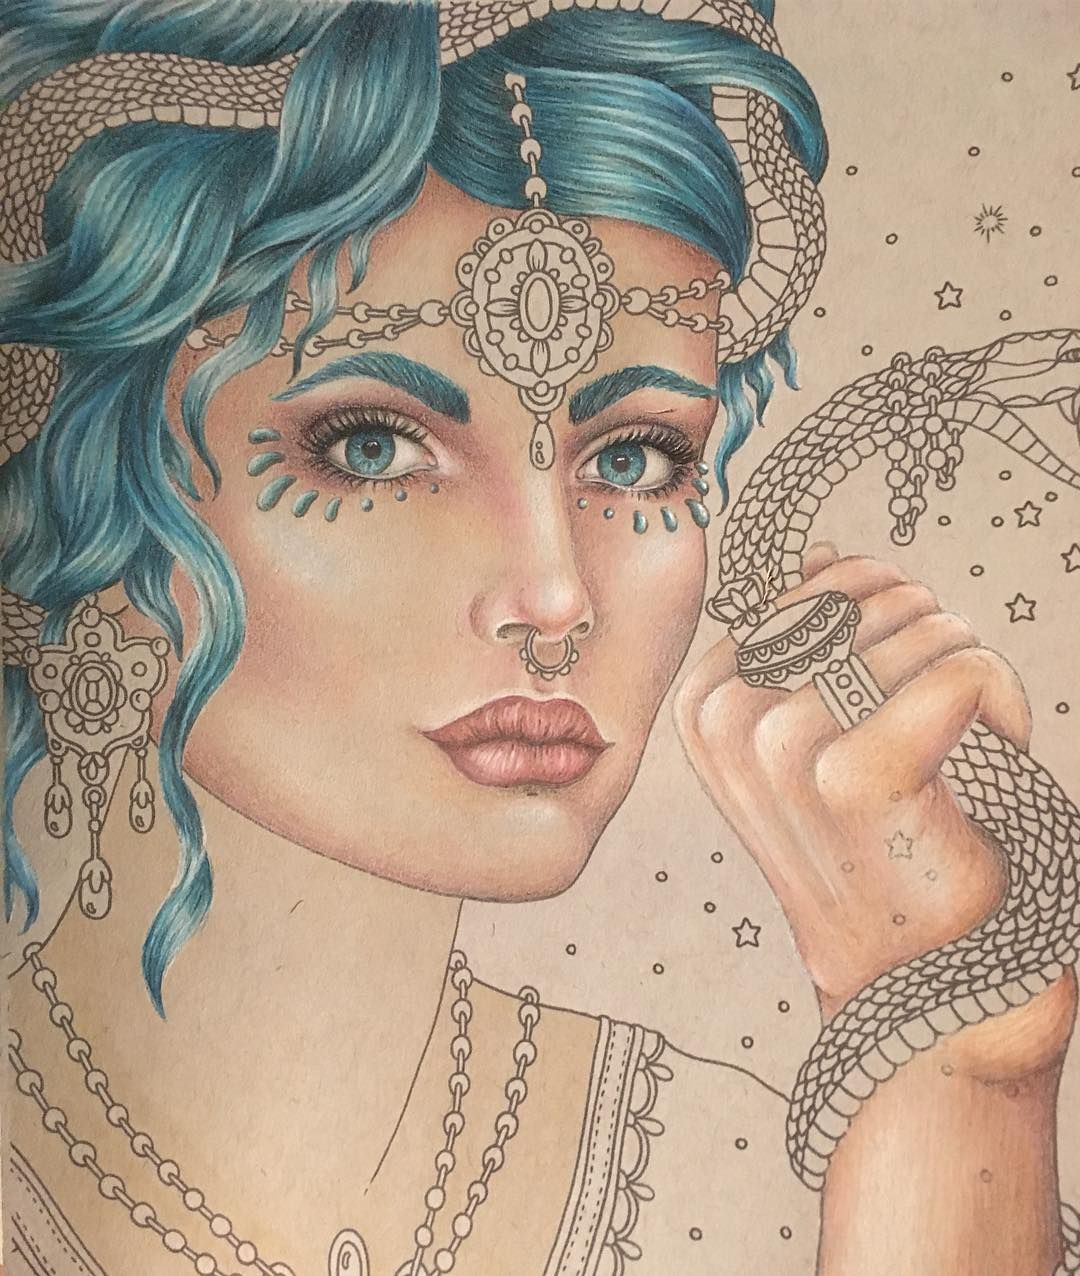 Tonights progress!  #hannakarlzon #magiskgryning #magicaldawn #prismacolor #copicmarkers #copicciao #wip  #strathmoretonedpaper